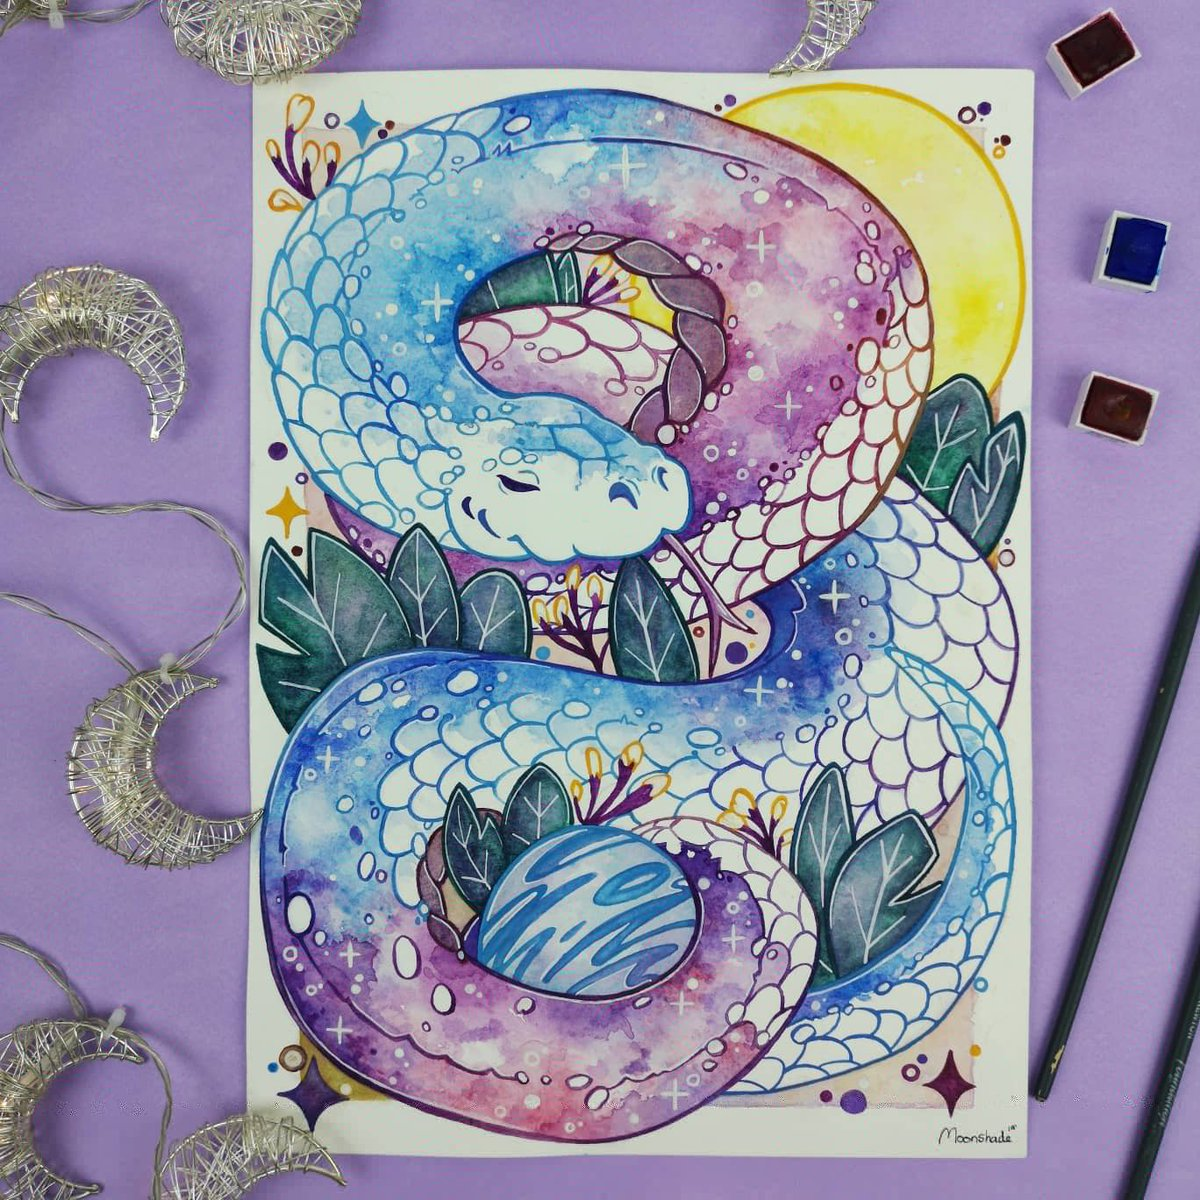 Good evening everyone  I hope that you have had a lovely couple days over the festive period! Here is a Galaxy snake I painted over the holidays  #snake #snakes #animalart #animalillustration #reptiles #galaxyanimals #galaxy #galaxywatercolor #stars #moon #traditionalartpic.twitter.com/mIwGX3dz9d